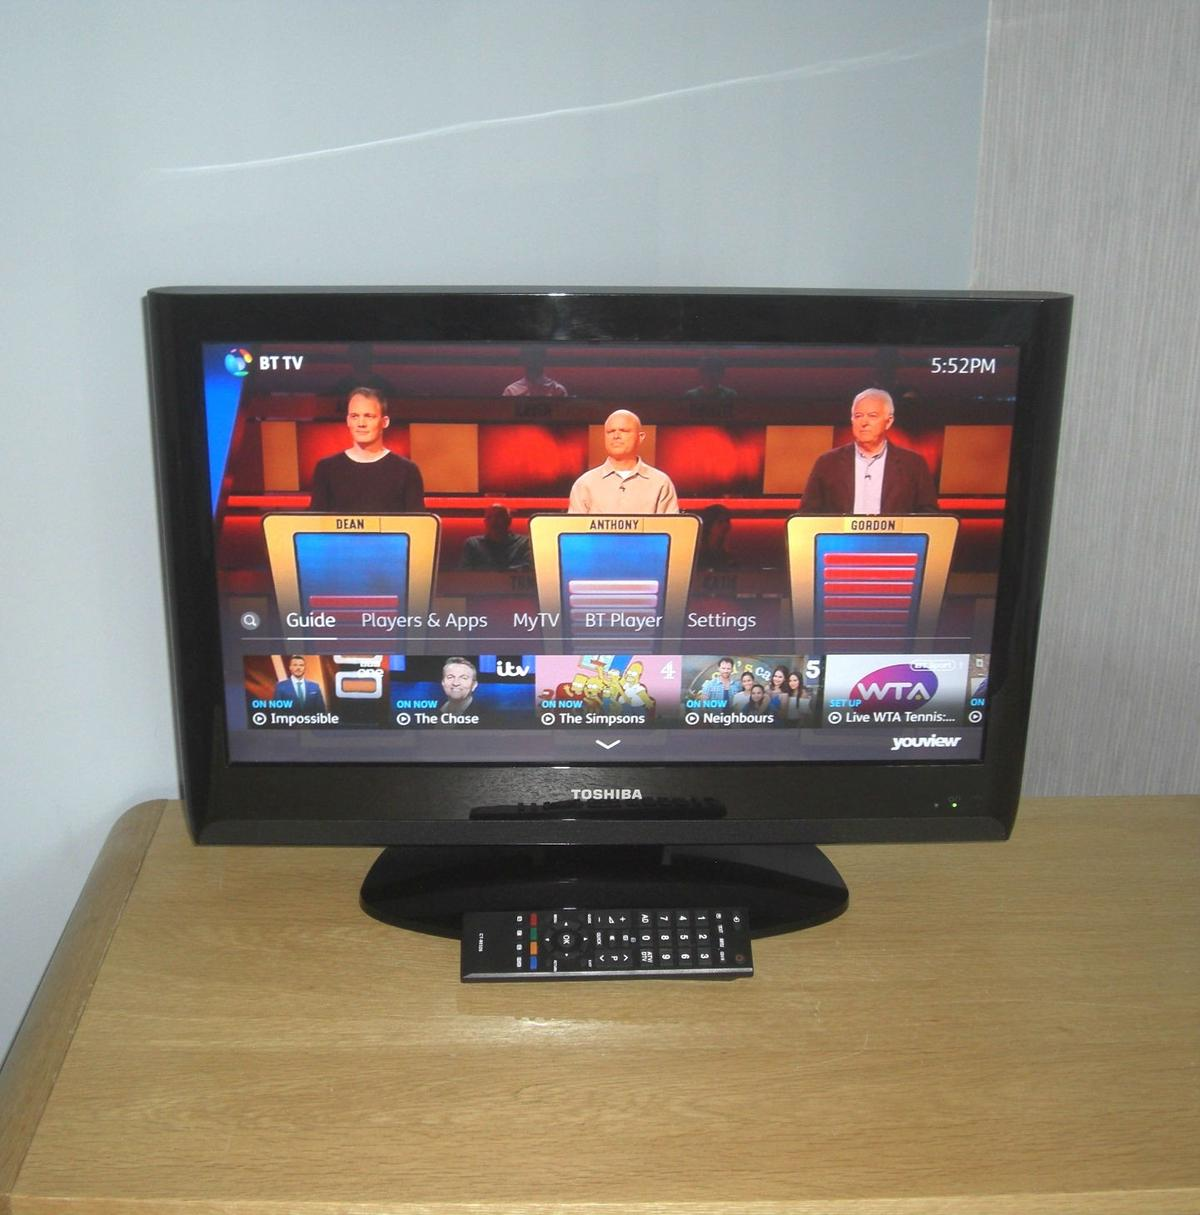 Toshiba REGZA 22 inch Full HD 1080p LCD TV in L36 Knowsley for